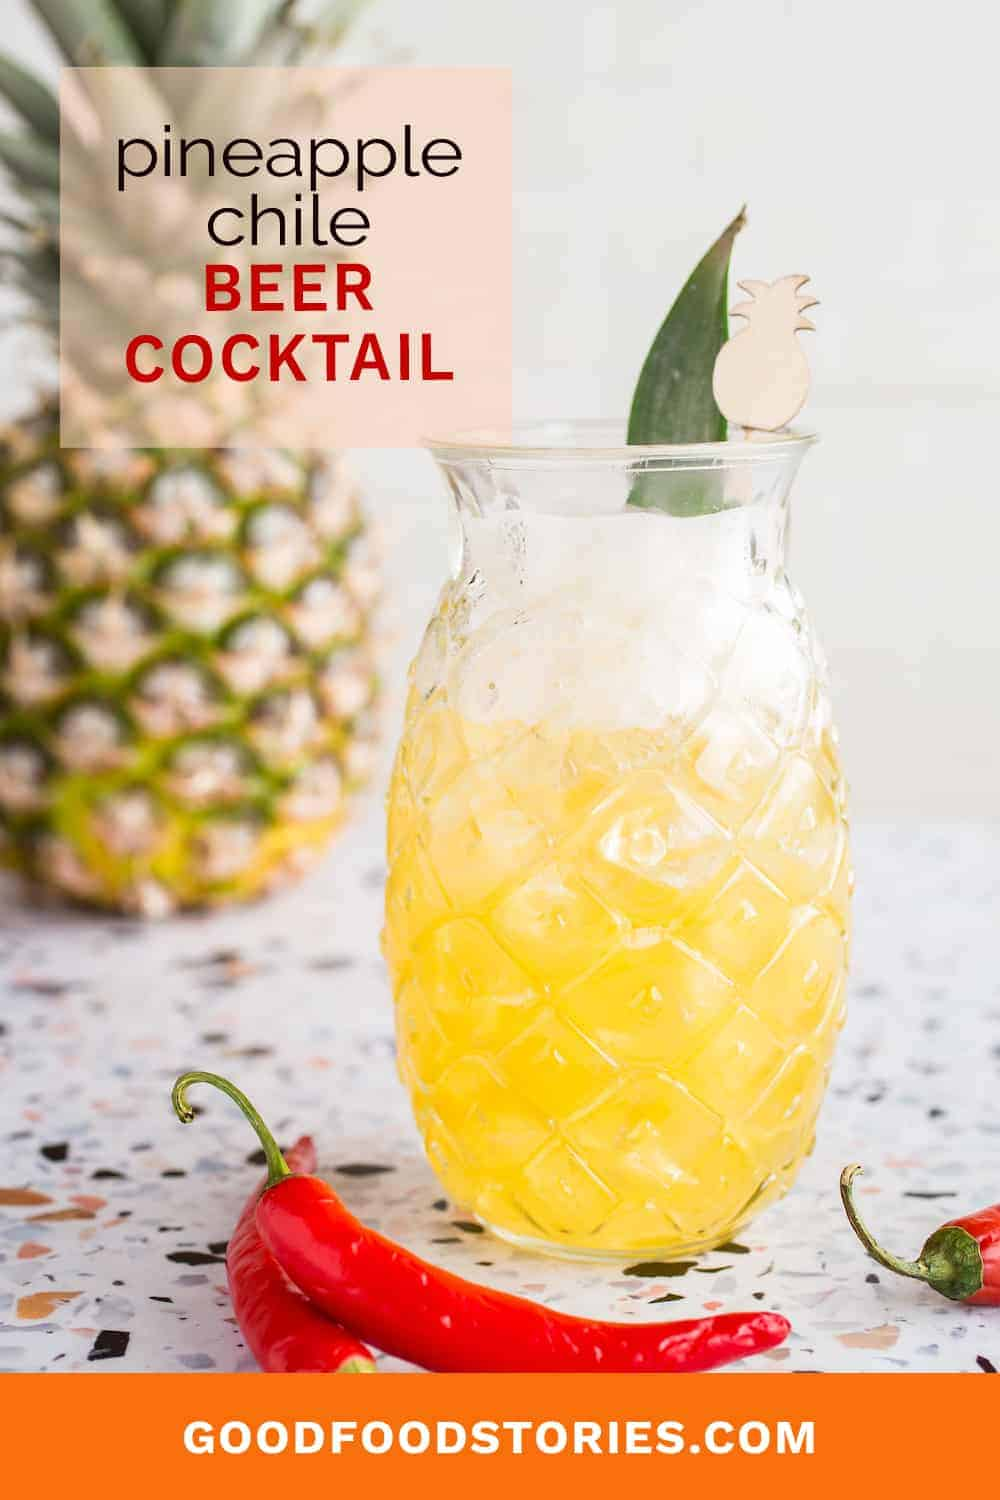 pineapple chile beer cocktail